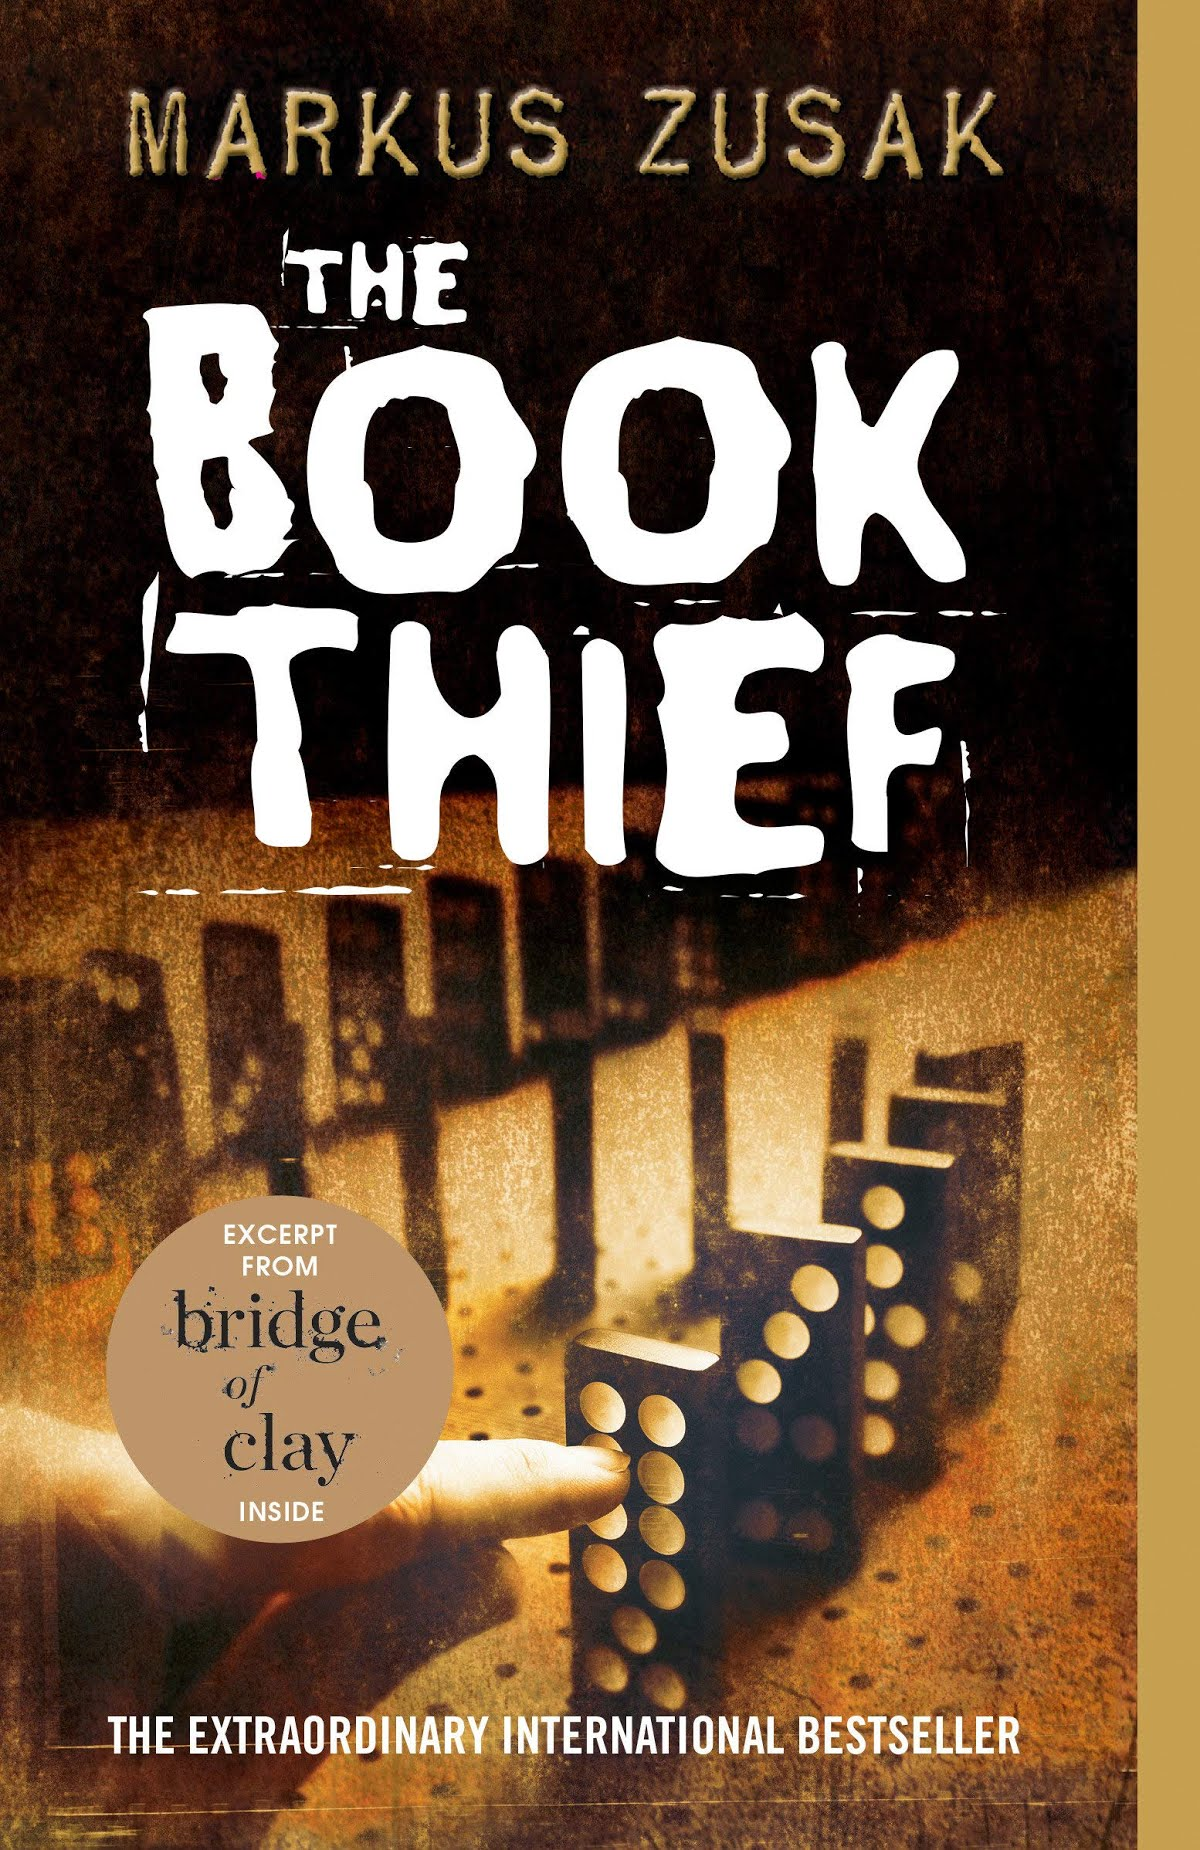 Cover of The Book Thief published in 2007. ( source: https://www.amazon.com/Book-Thief-Markus-Zusak/dp/0375842209 )